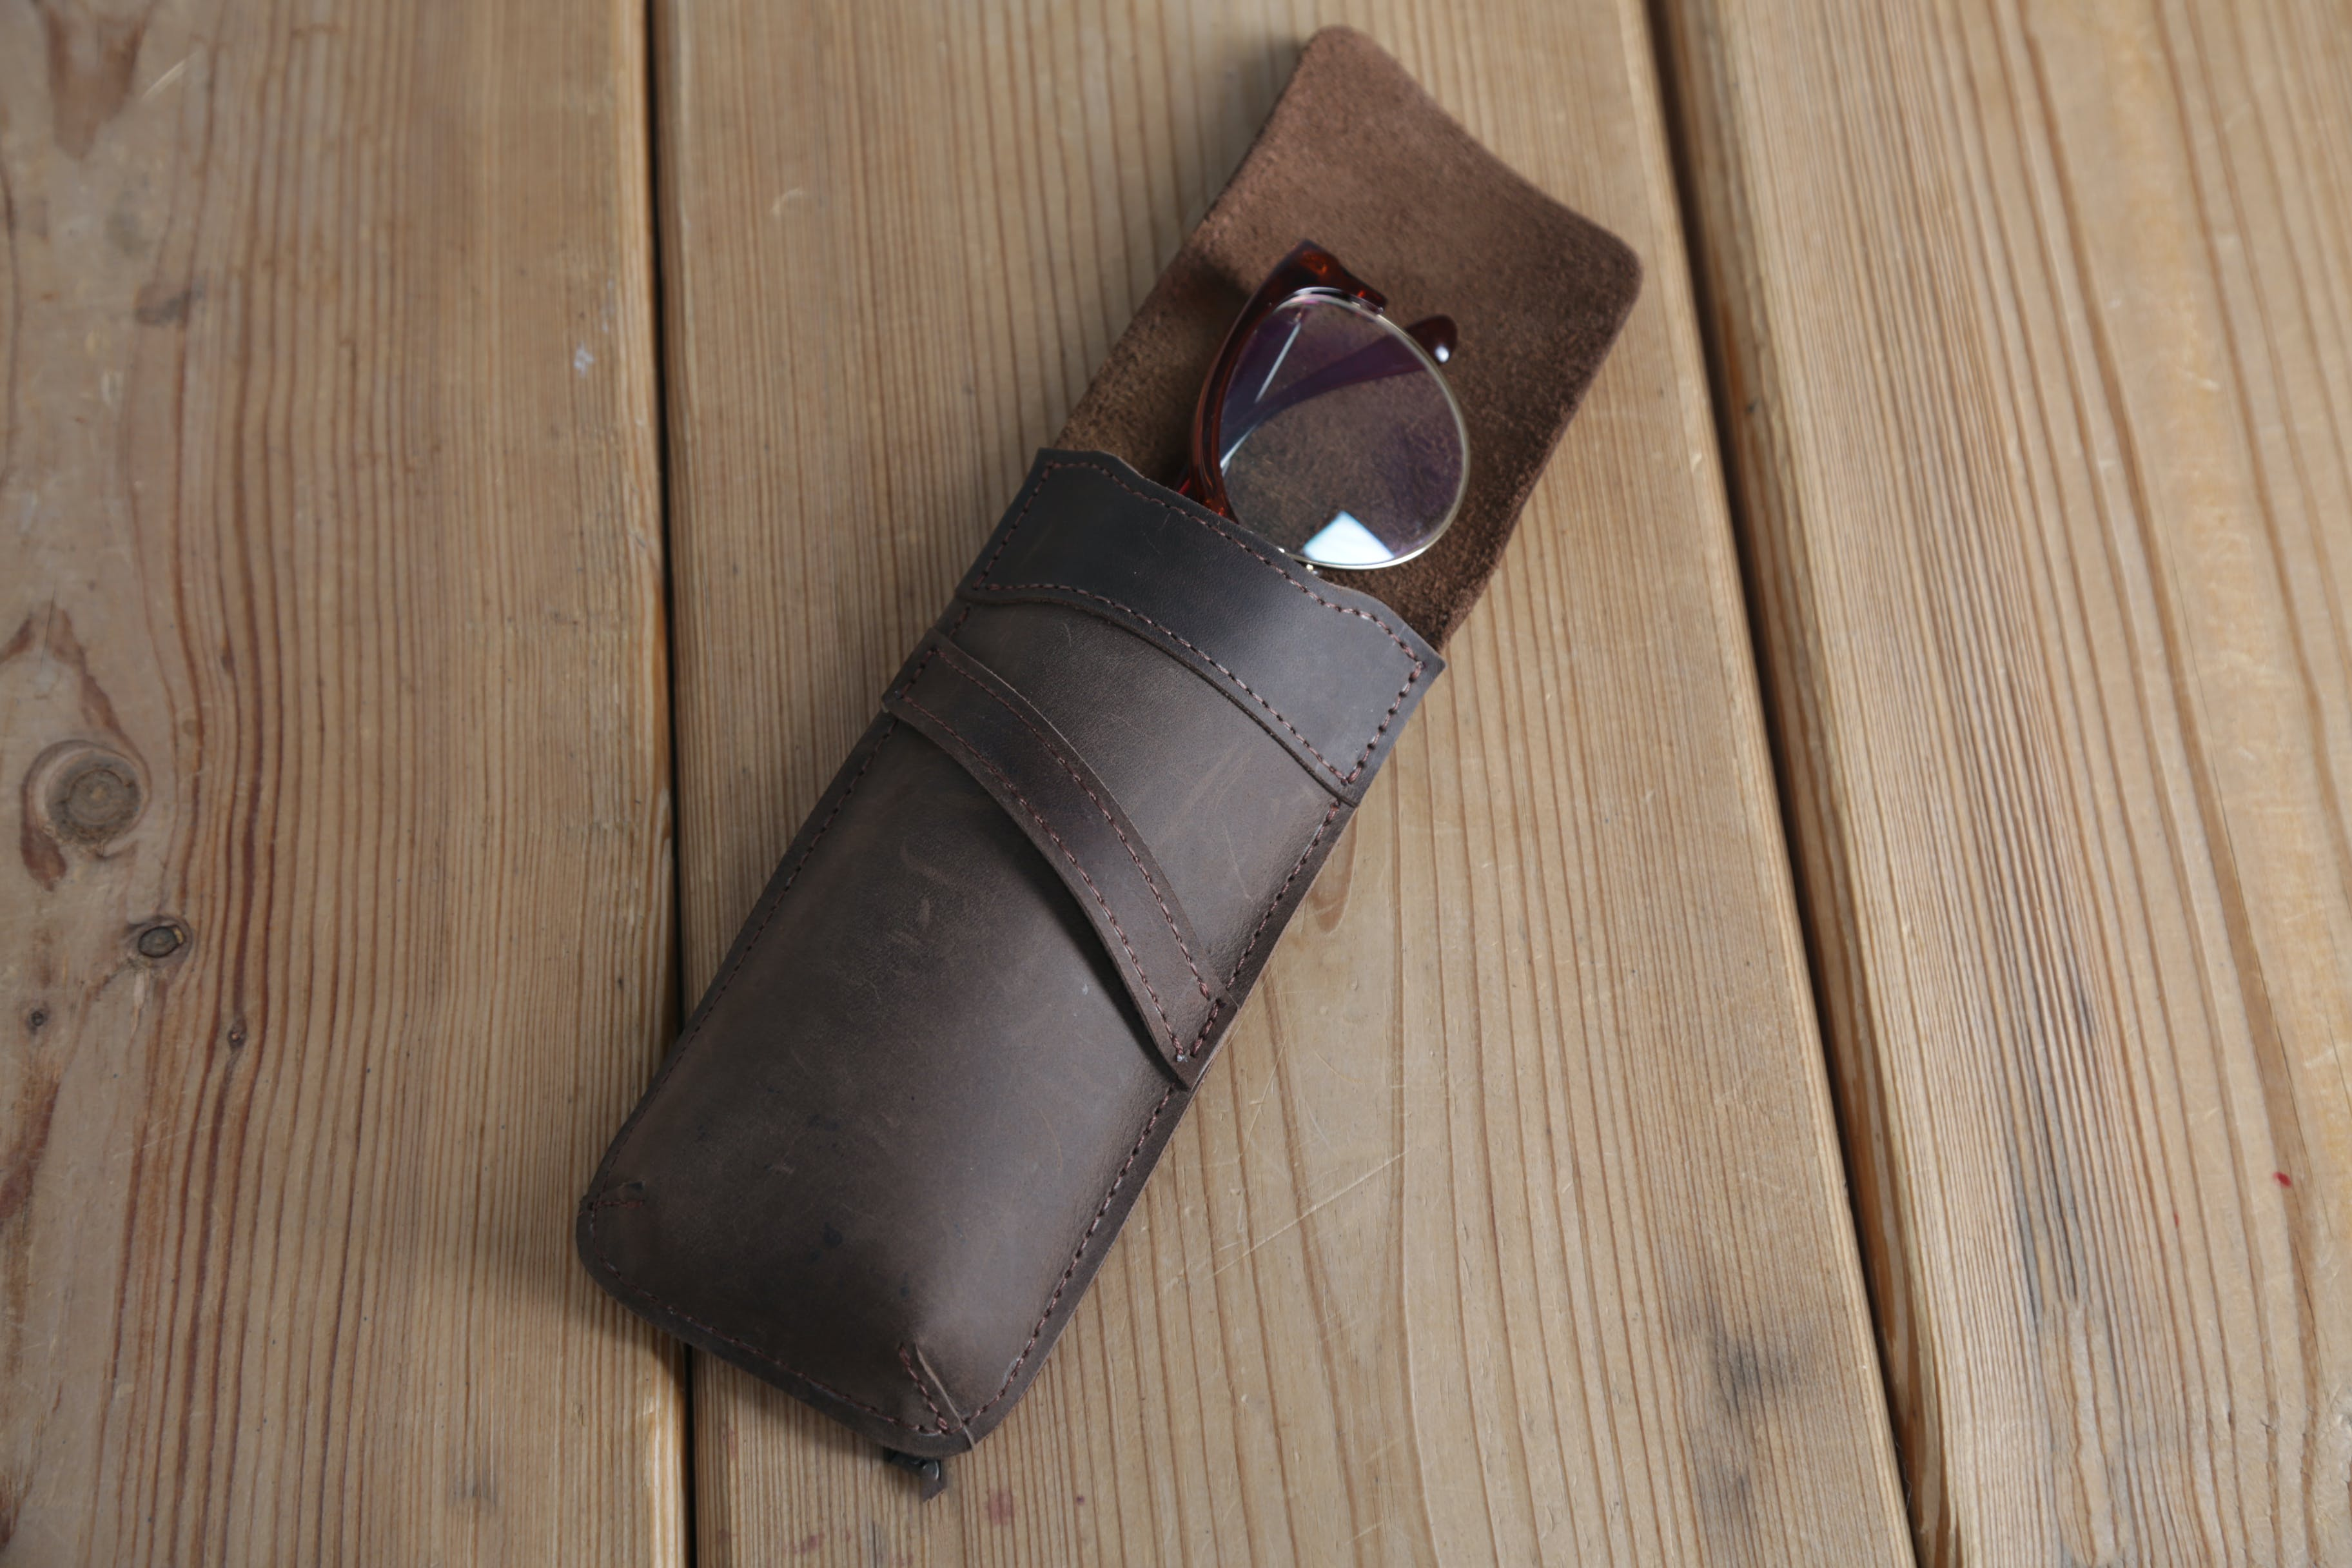 Eyeglasses in Brown Leather Case on Top of Wooden Surface